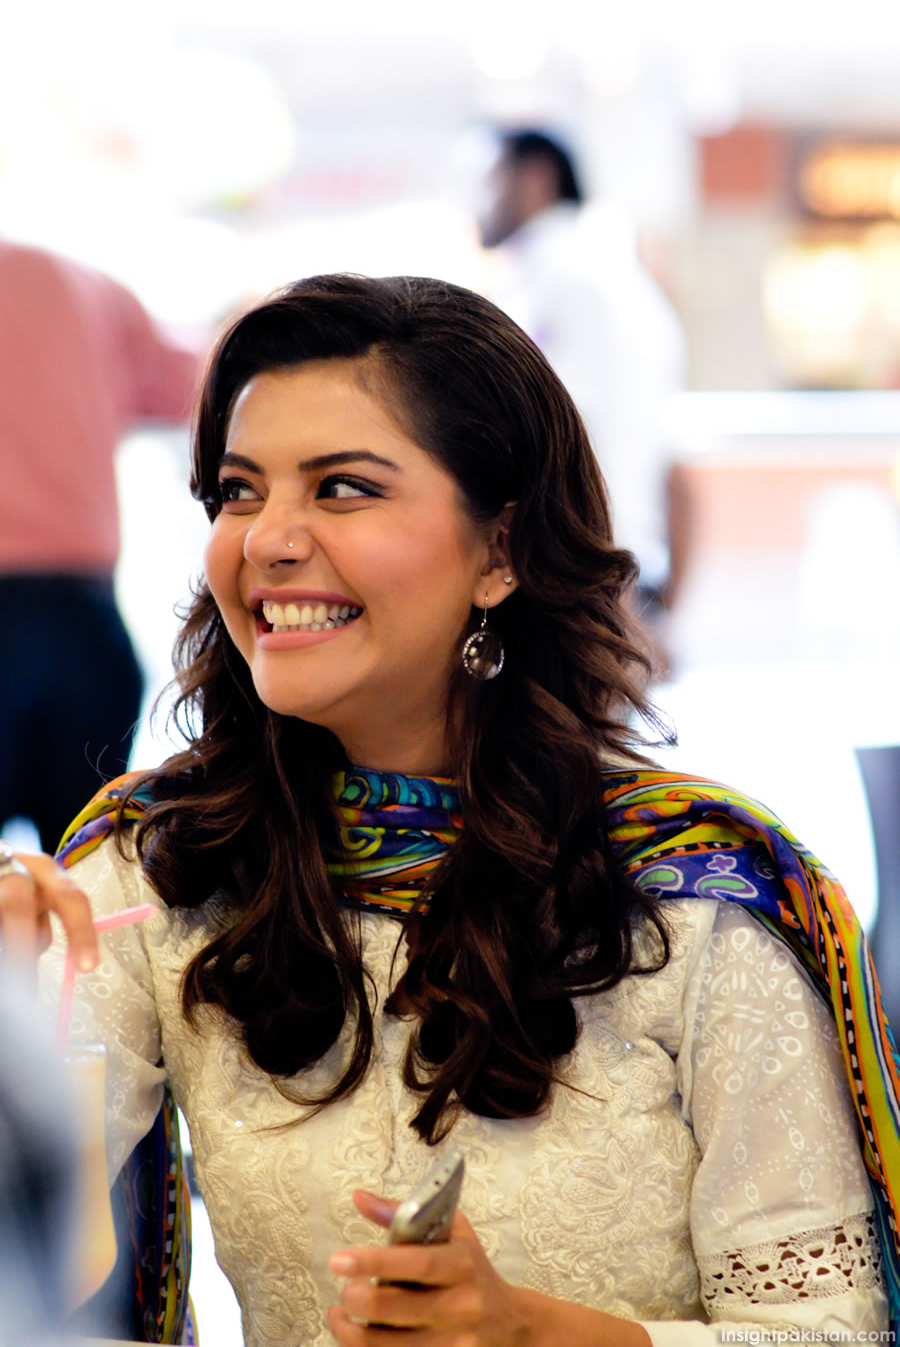 Nida Yasir Dresses http://www.insightpakistan.com/1897/nida-yasir-looks-beautiful-without-make-up/